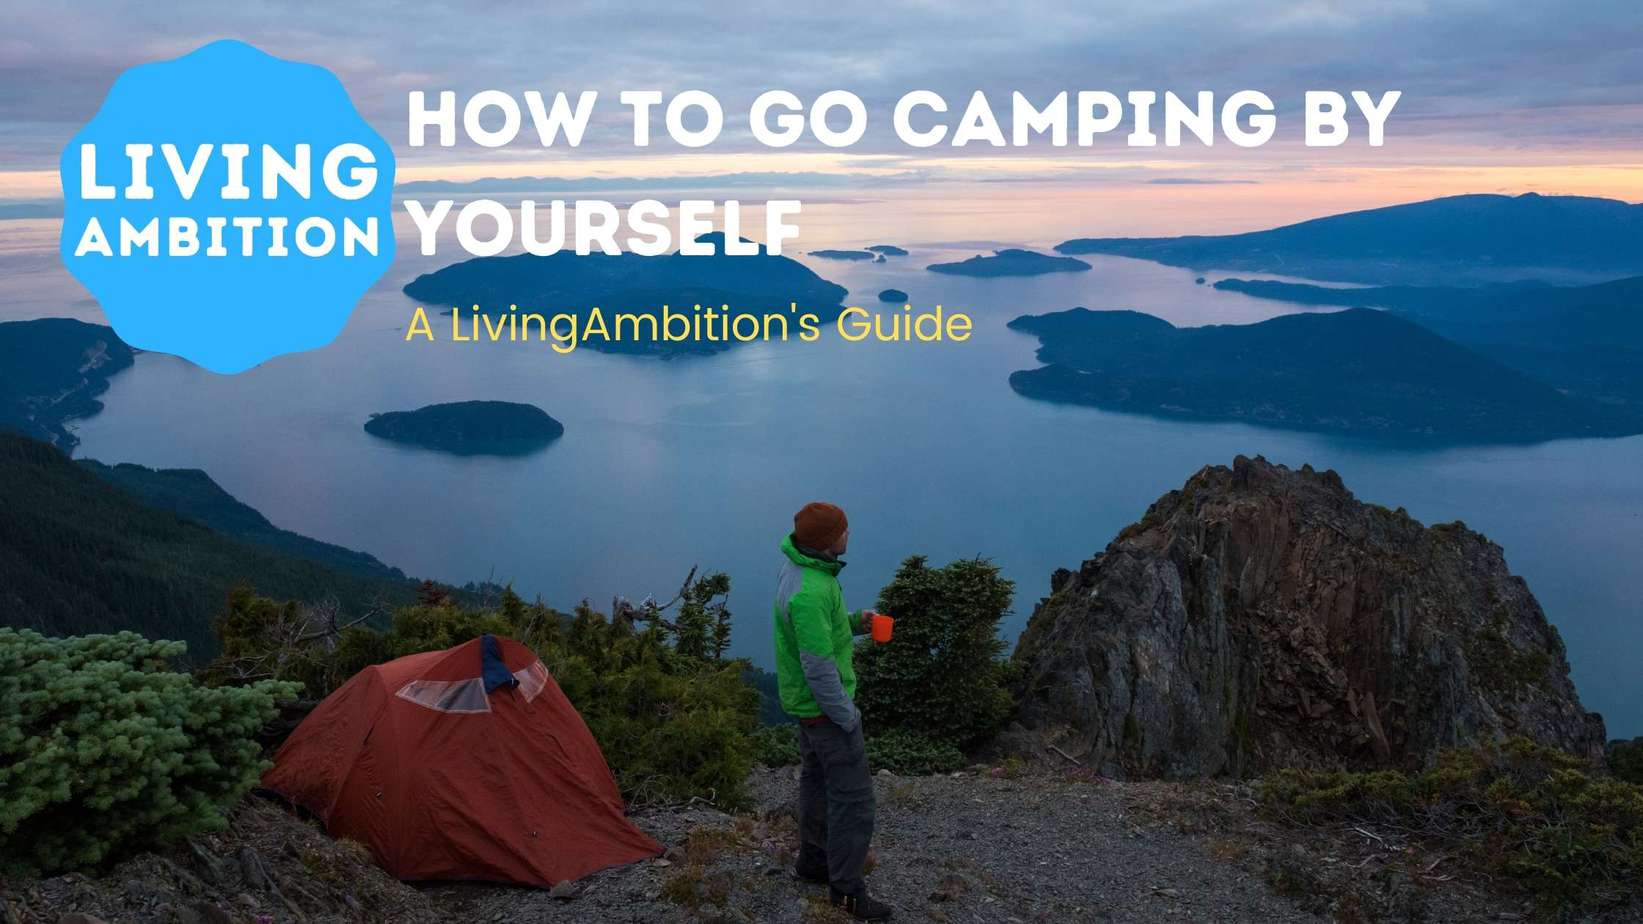 how to go camping by yourself